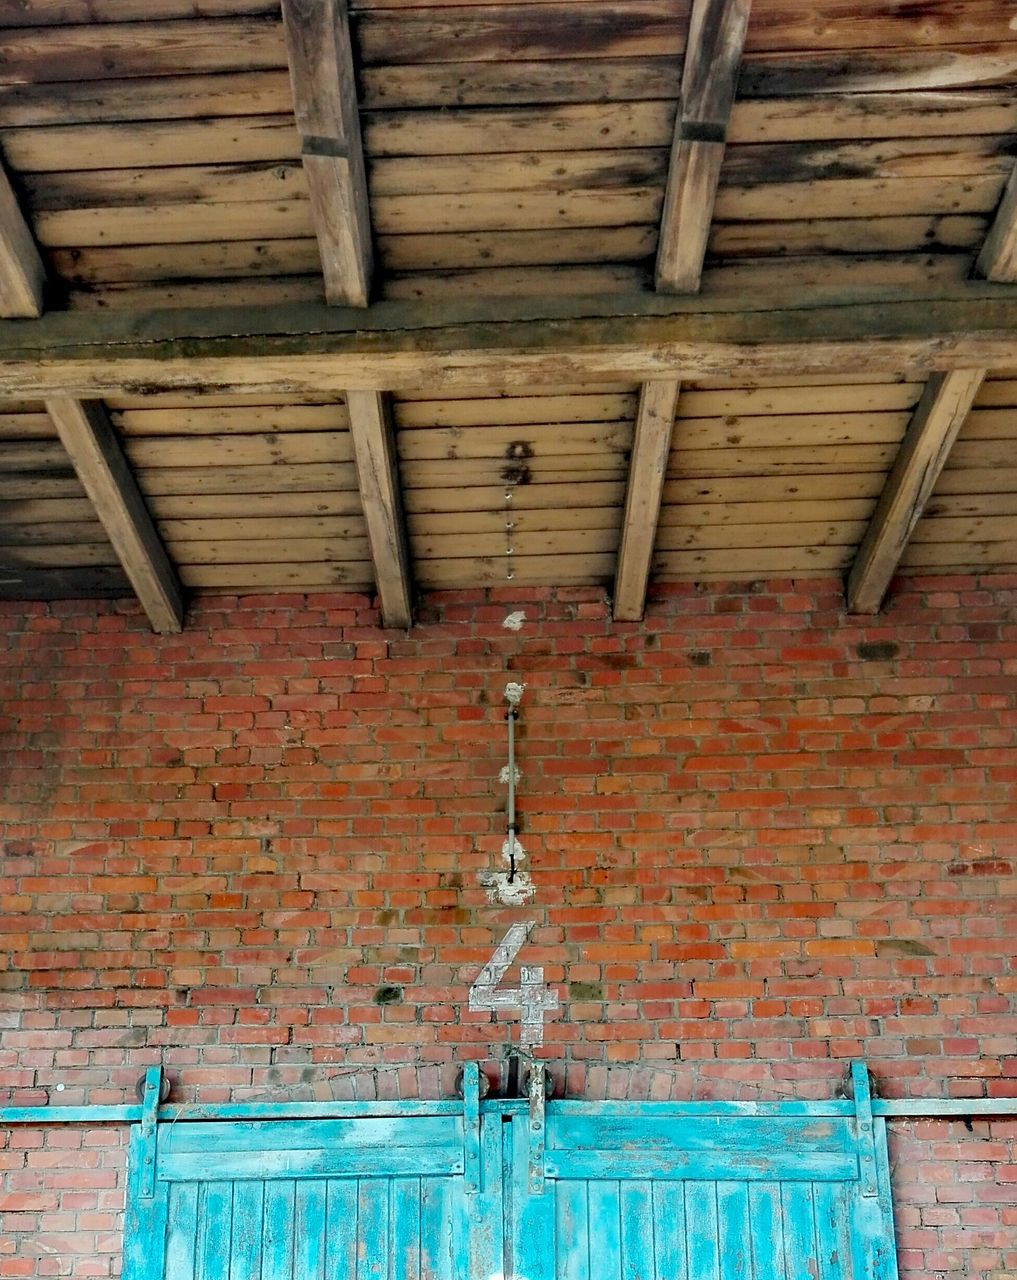 architecture, built structure, brick wall, wood - material, day, no people, hanging, indoors, building exterior